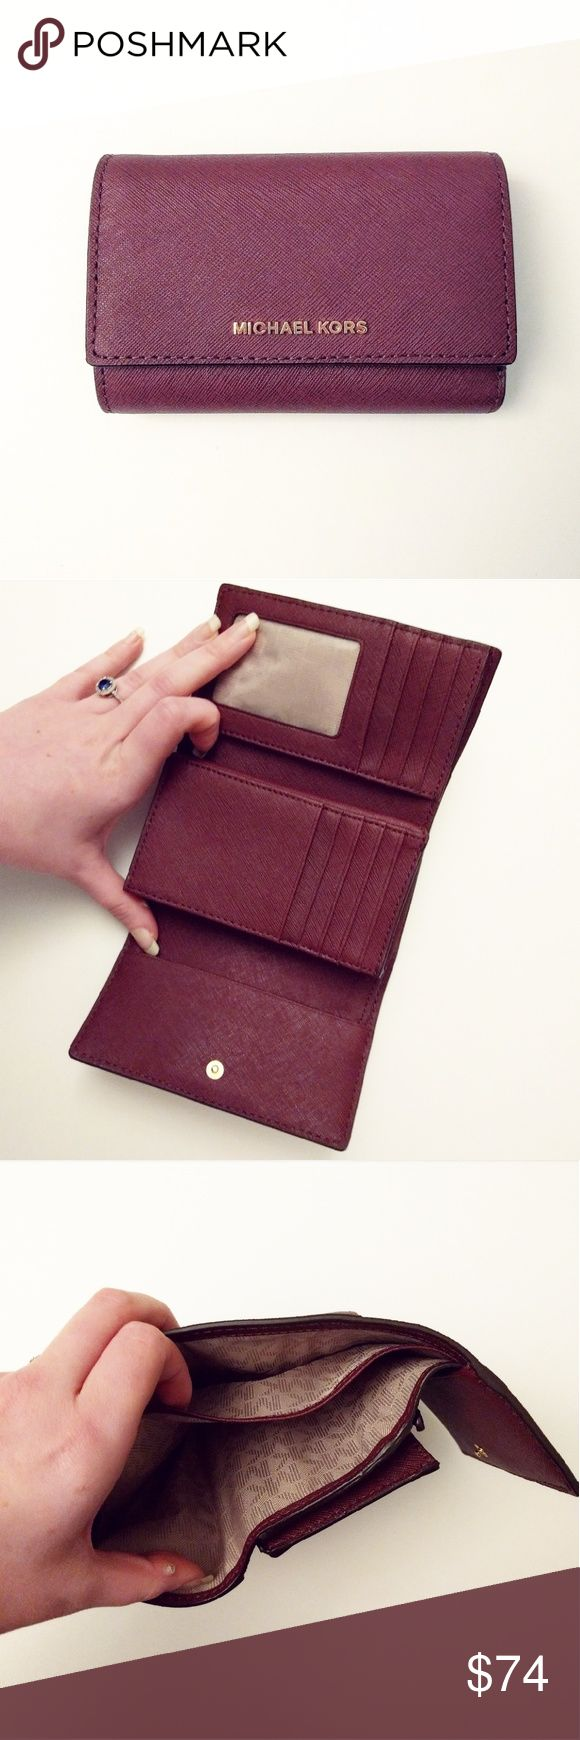 MK Jet Set Travel Medium Leather Wallet Brand new, never used. This is a super cute burgundy plum wallet, perfectly sized for any purse or to carry! It has 8 card slots, an ID slot, and zippered coin pocket, and two sleeves for cash. MICHAEL Michael Kors Bags Wallets